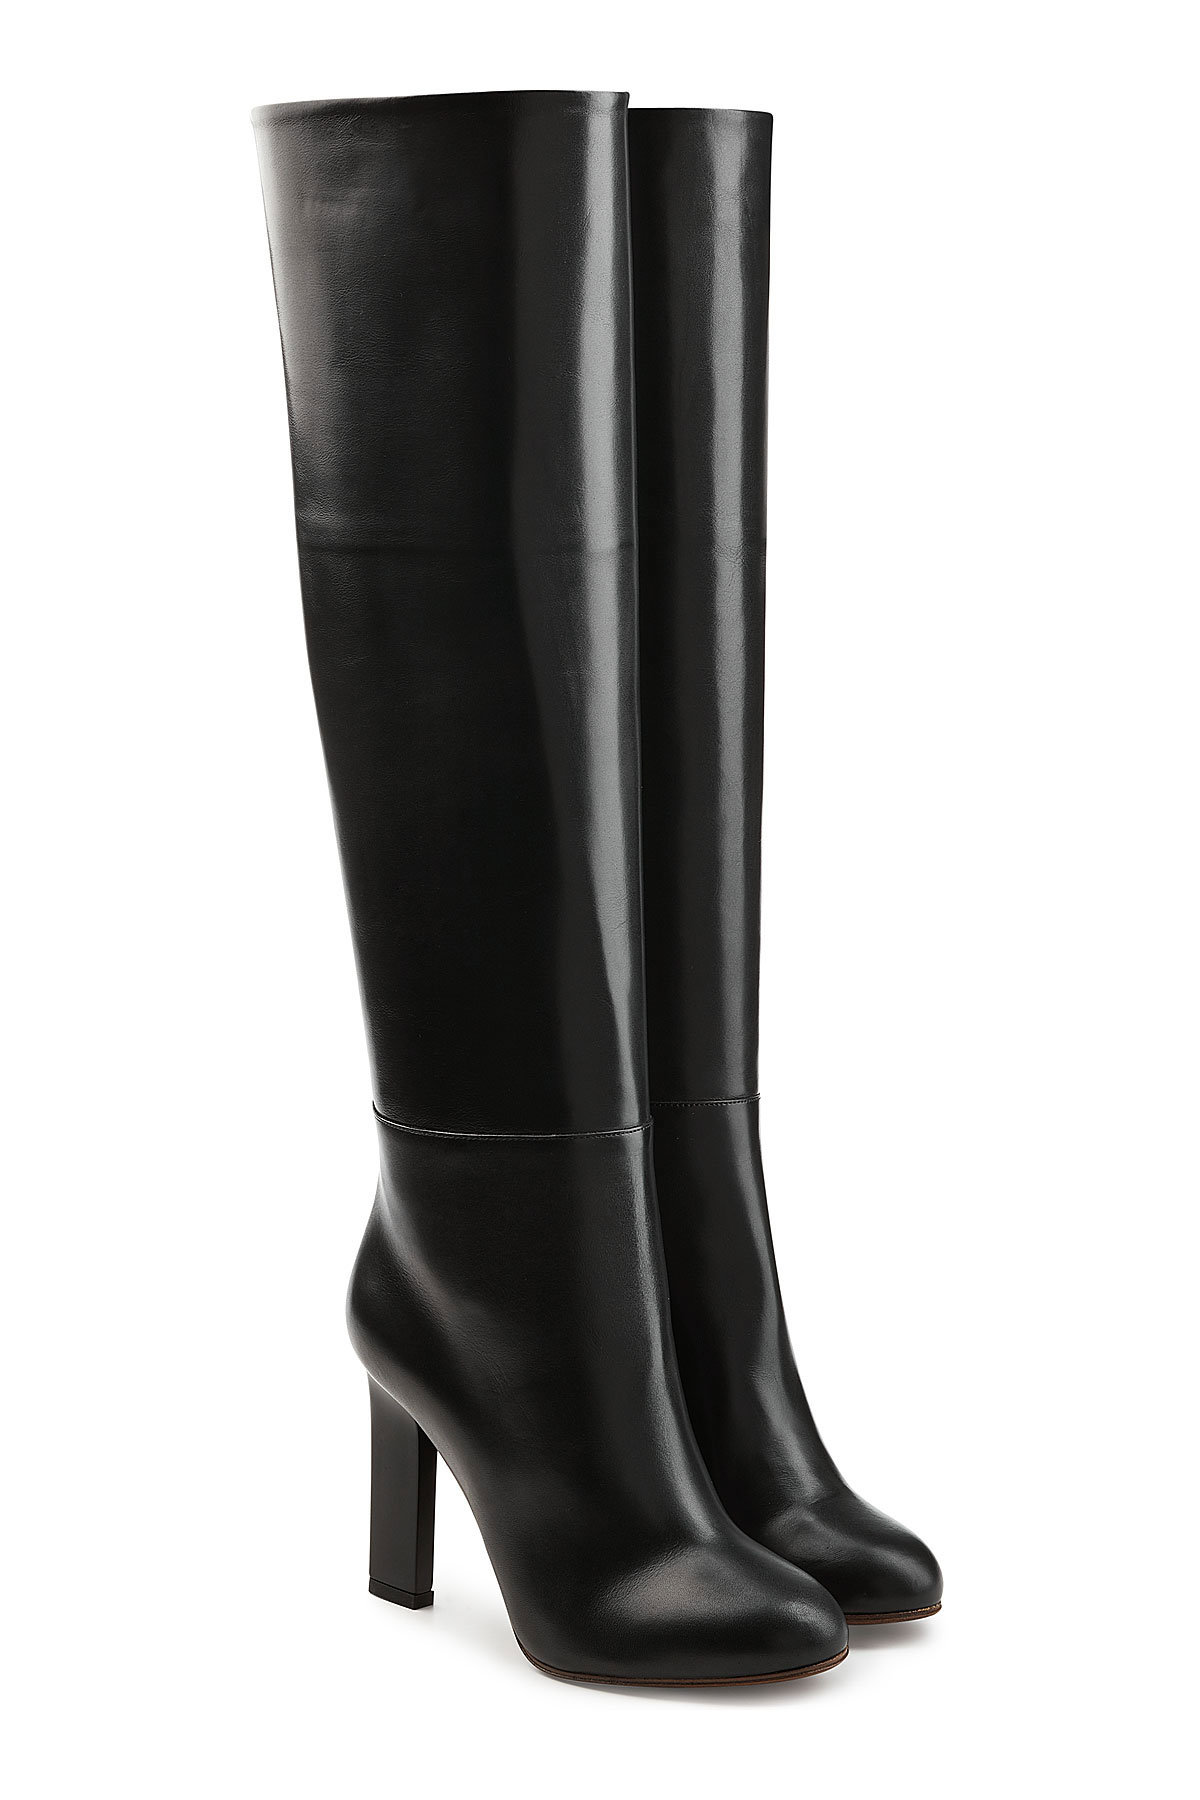 Marni Leather Knee Boots Gr. EU 36 8cz1b